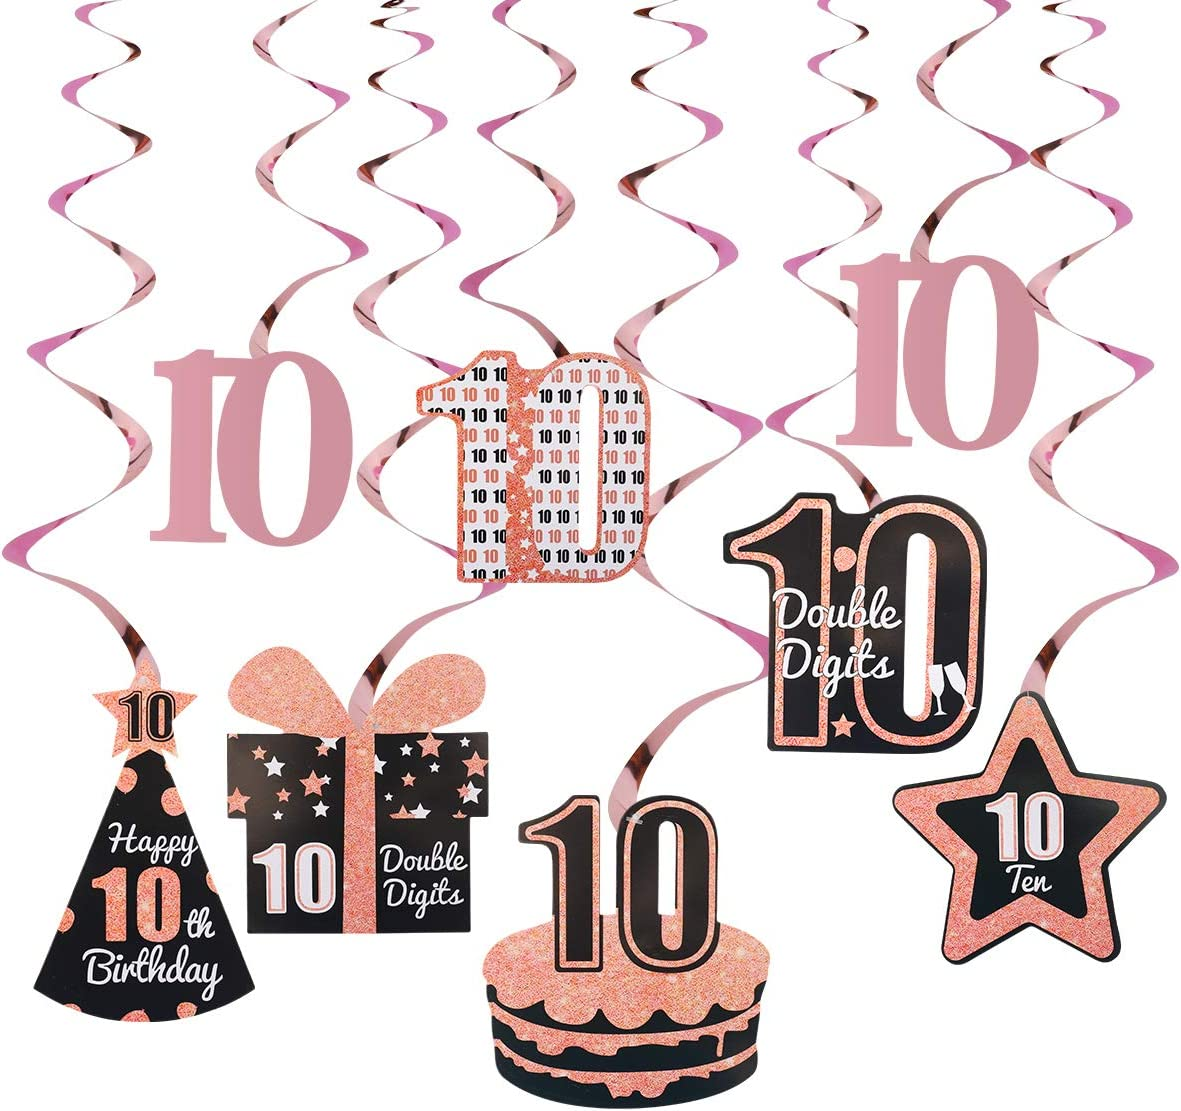 Excelloon 10th Birthday Decorations Supplies for Girls, Rose Gold 8Pcs Hanging Swirls, Happy 10 Year Old Birthday Cake Hat Present Star Party Decor, Ten Year Old Birthday Decorations